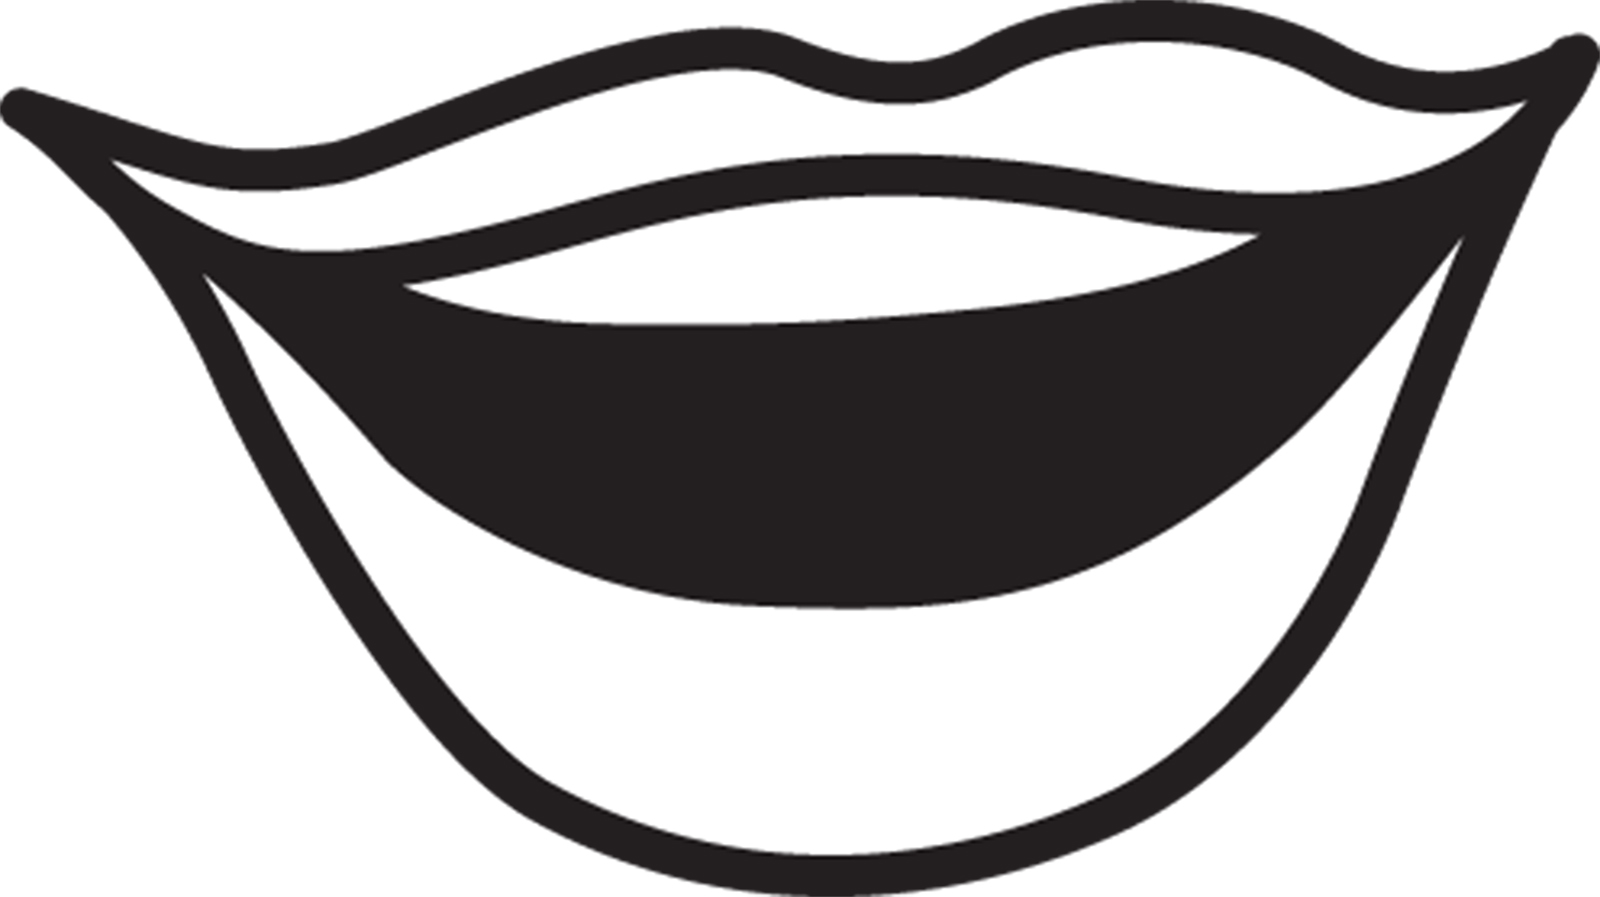 Mouth talking clipart black and white